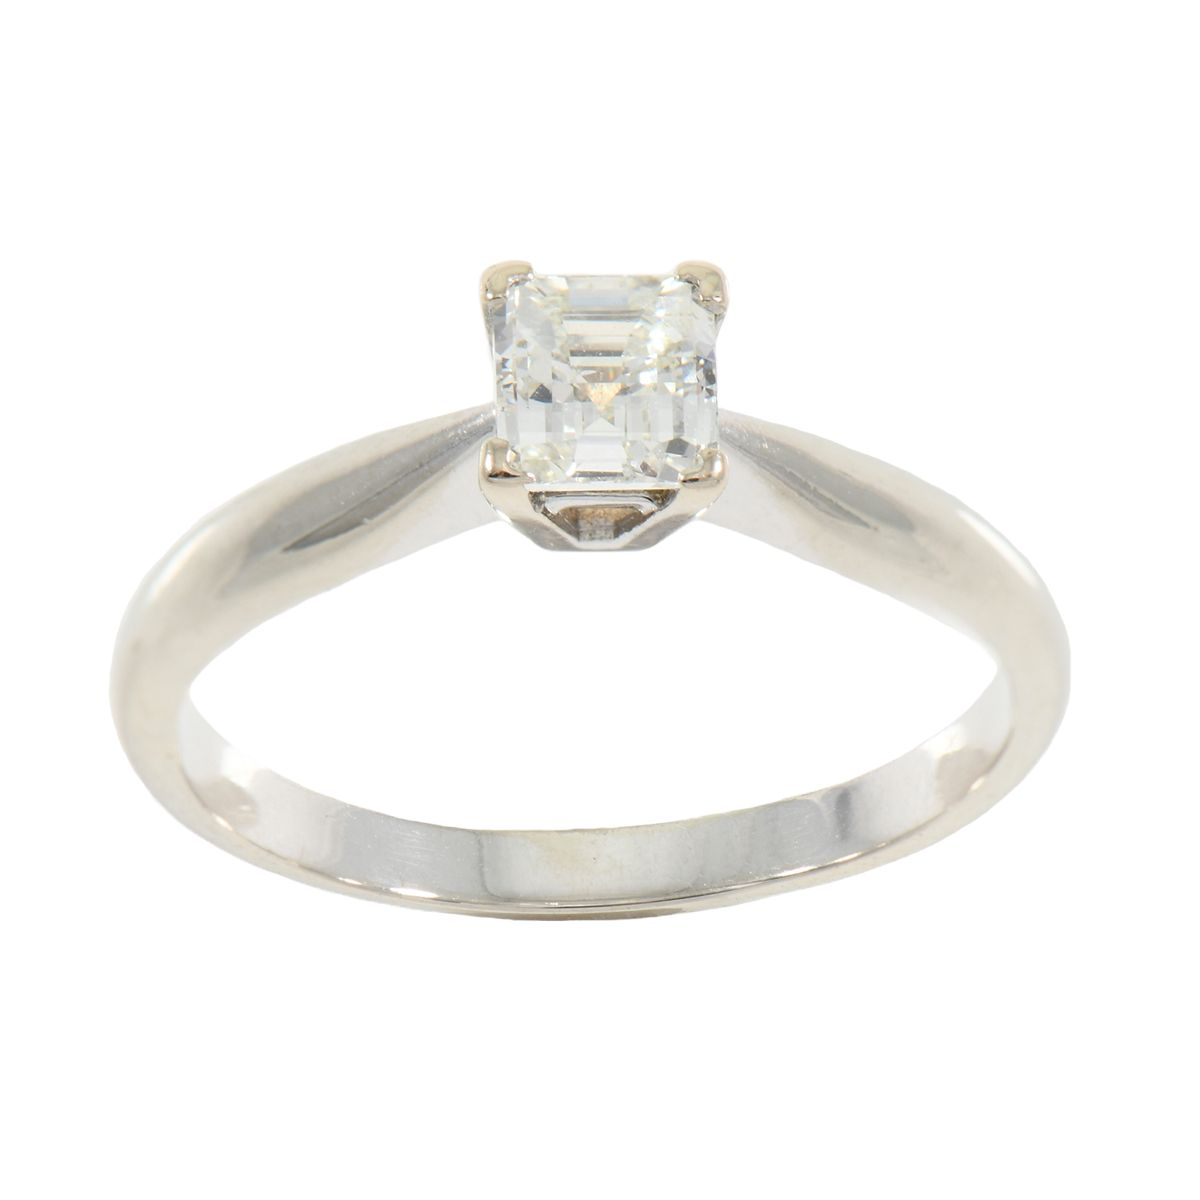 18ct White Gold 0.56ct Solitaire Ring Size M QGVTNL